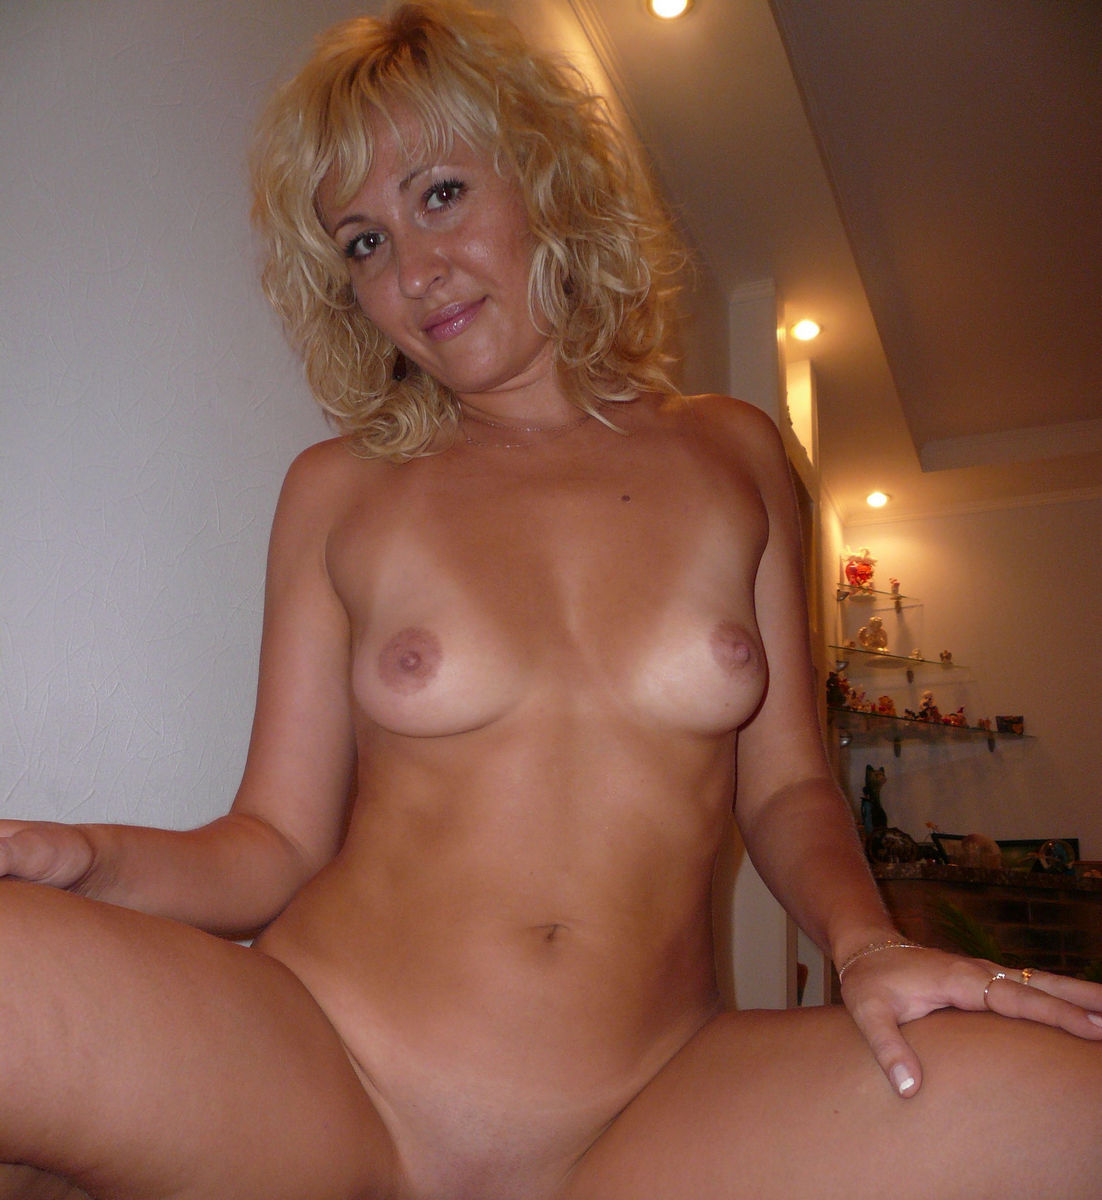 Blonde mature nude women exact